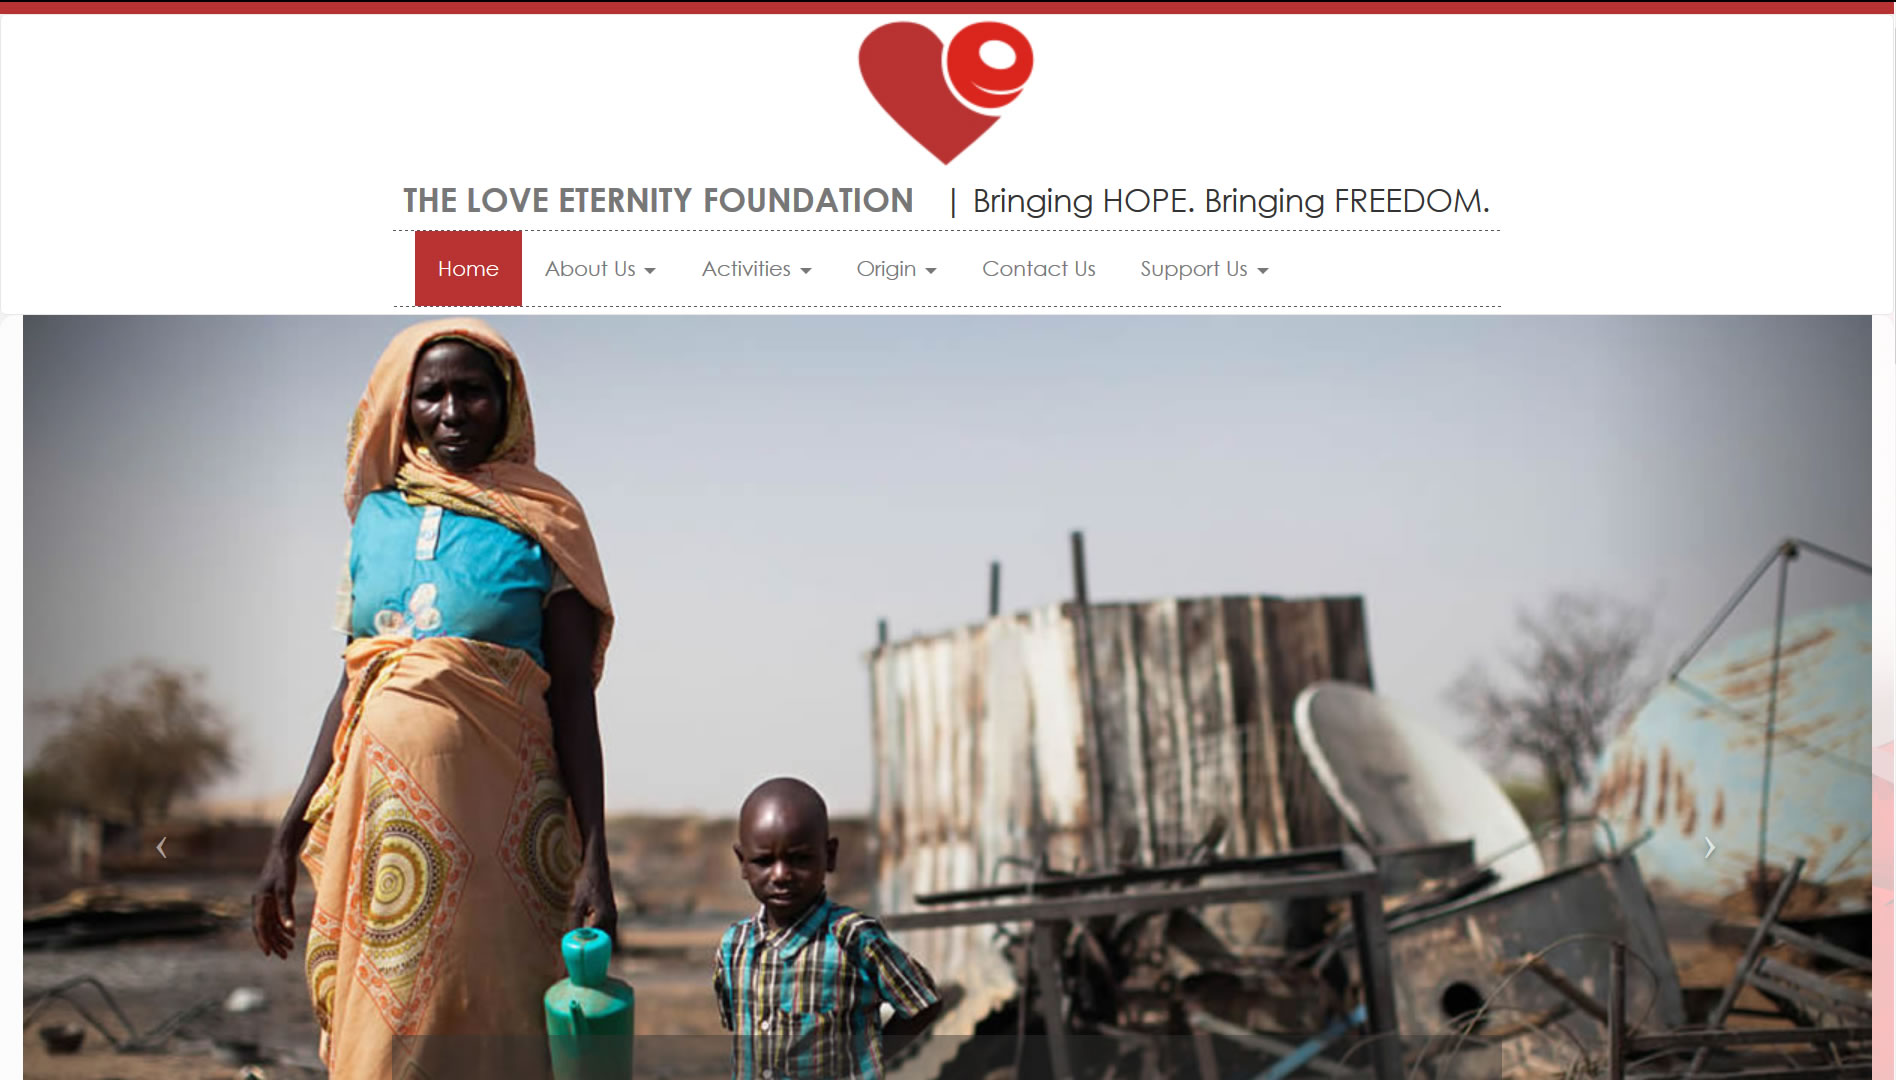 Love Eternity Foundation